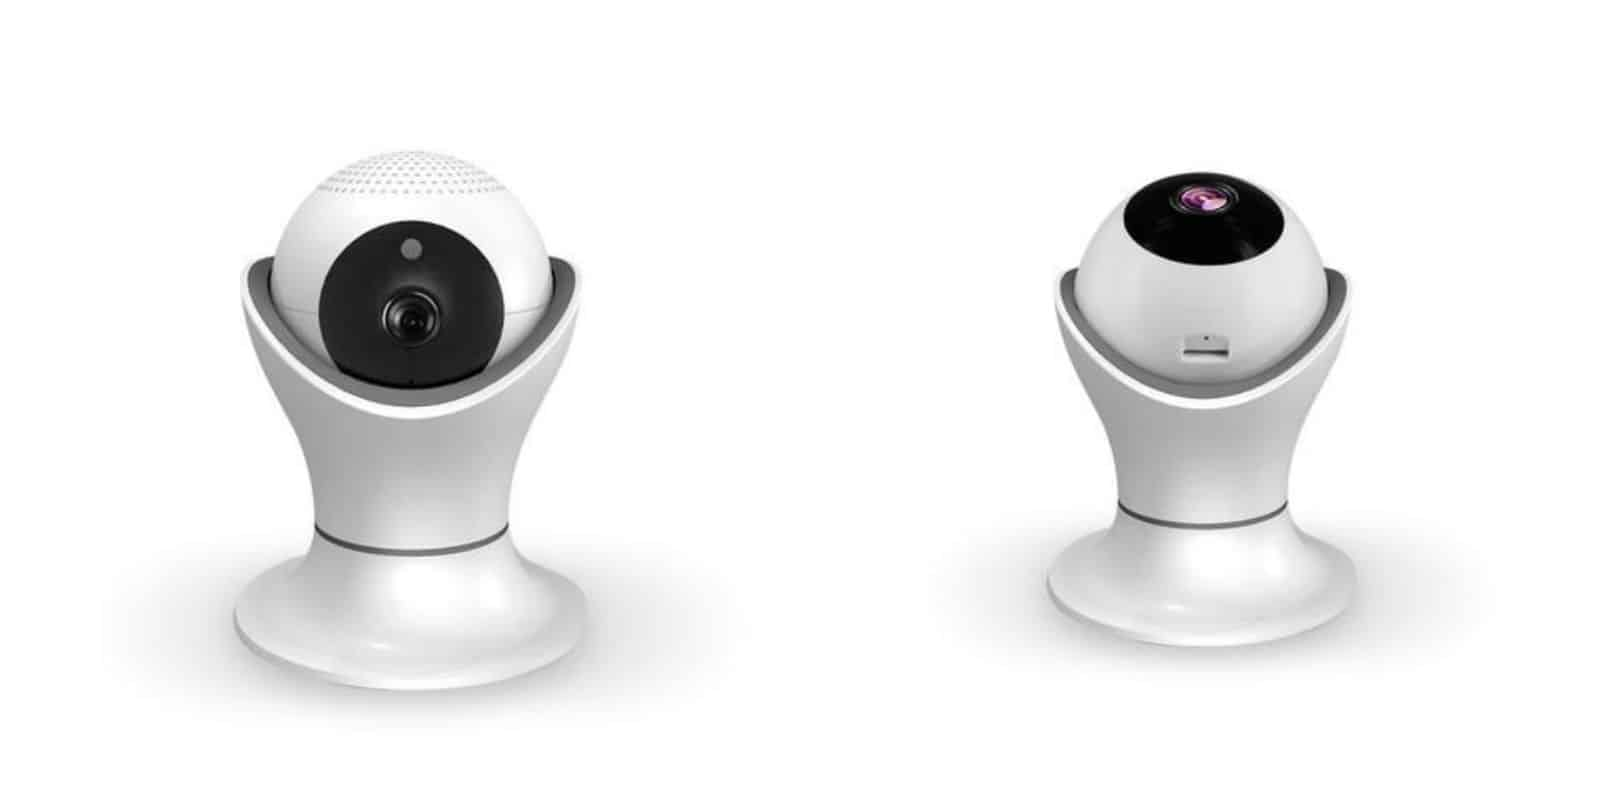 Watch your home from your mobile device with this encrypted security camera.